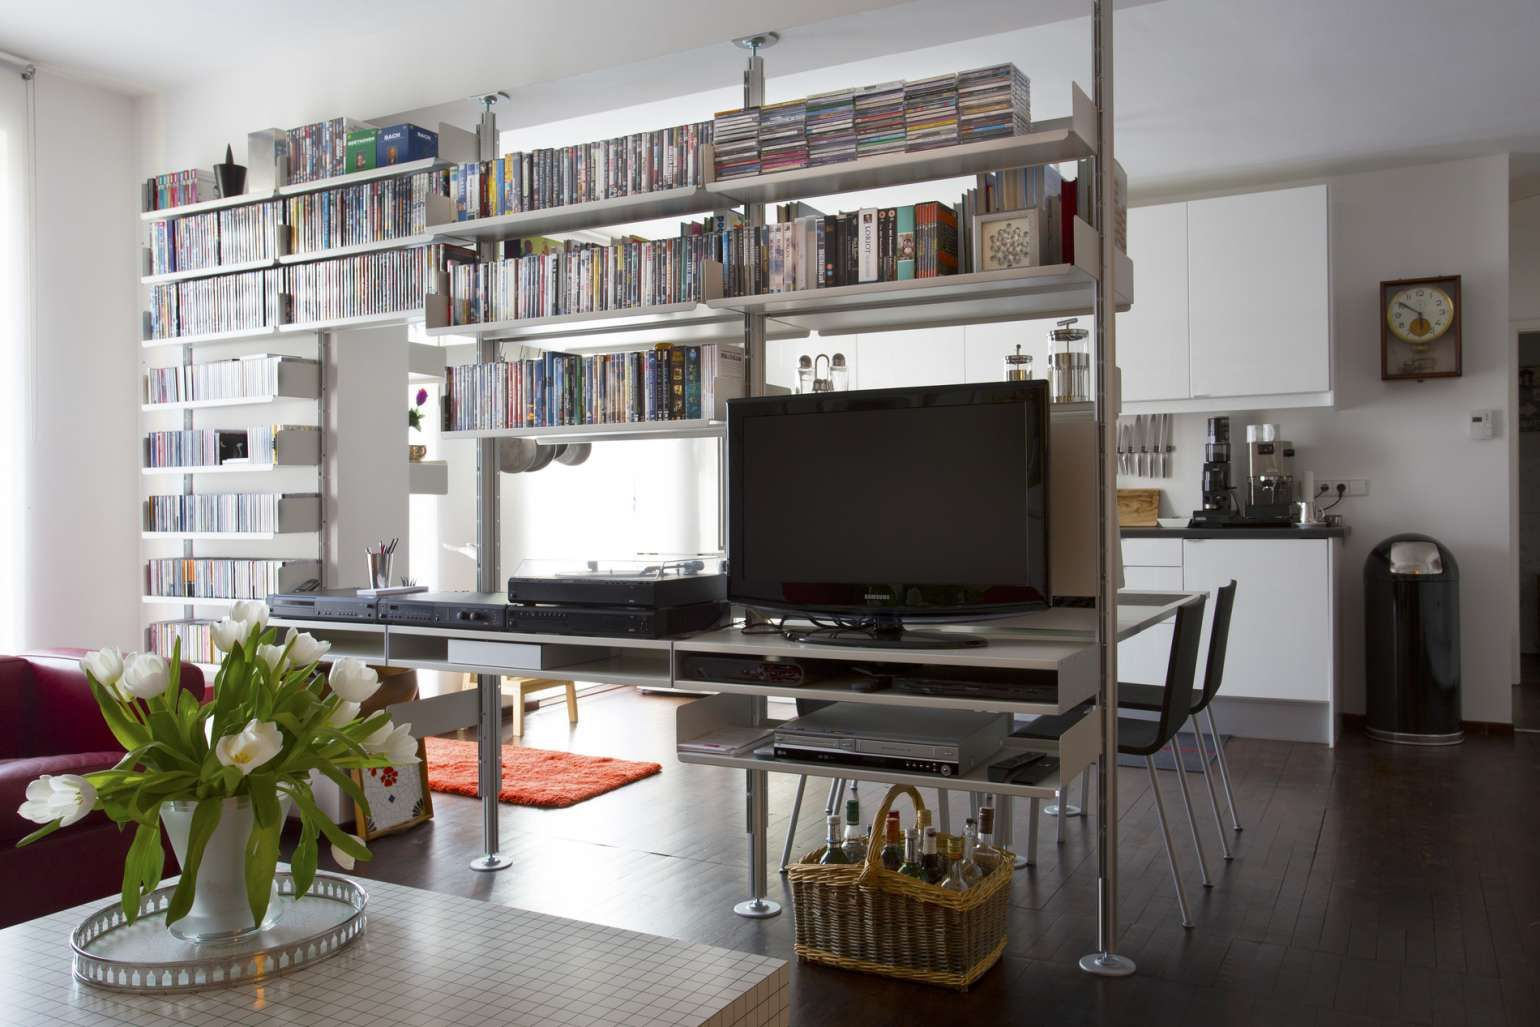 Tv stands can be placed atop a double shelf the slot in the double